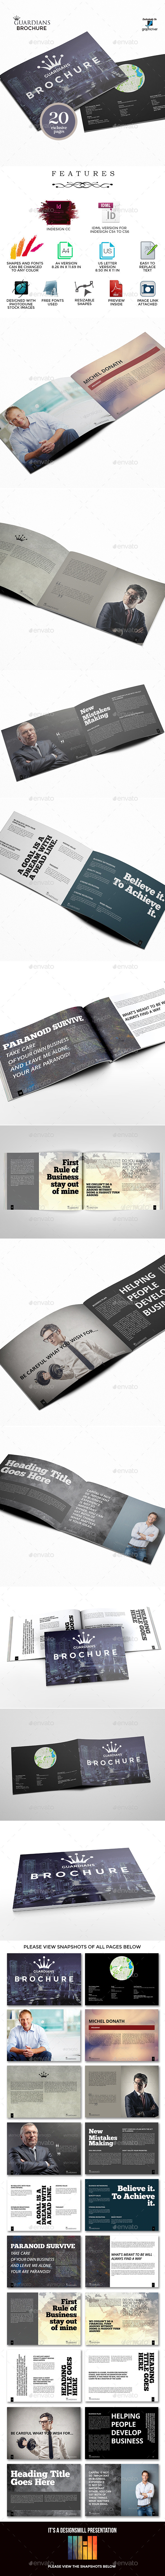 GraphicRiver Guardians Landscape Brochure for Business 9699672